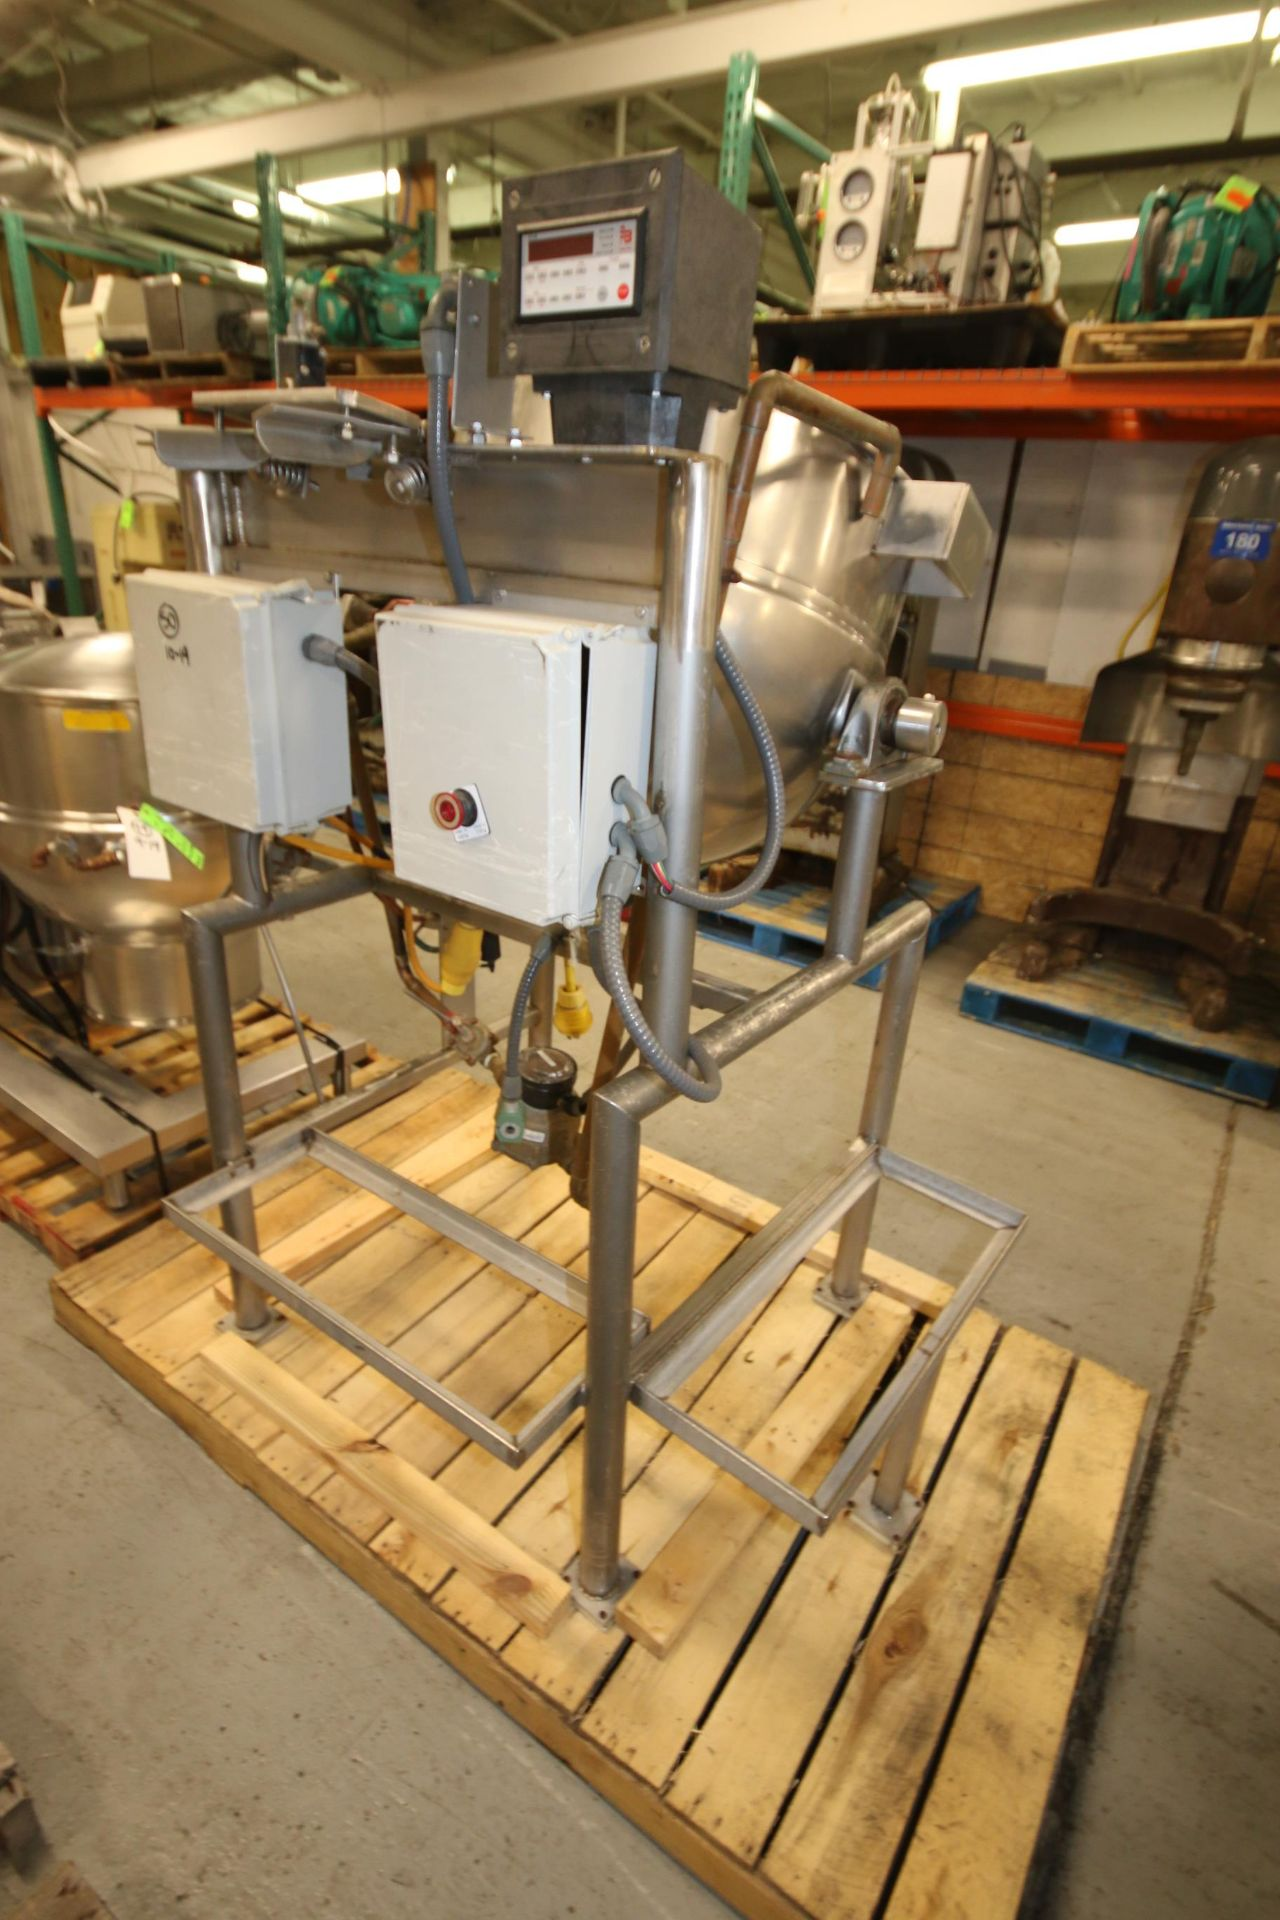 Lot 12 - Burkhard Aprox. 70 Gal. S/S Jacketed Tilting Kettle, SN 9466 56N T75, with Pneumatic Tilt, Mounted